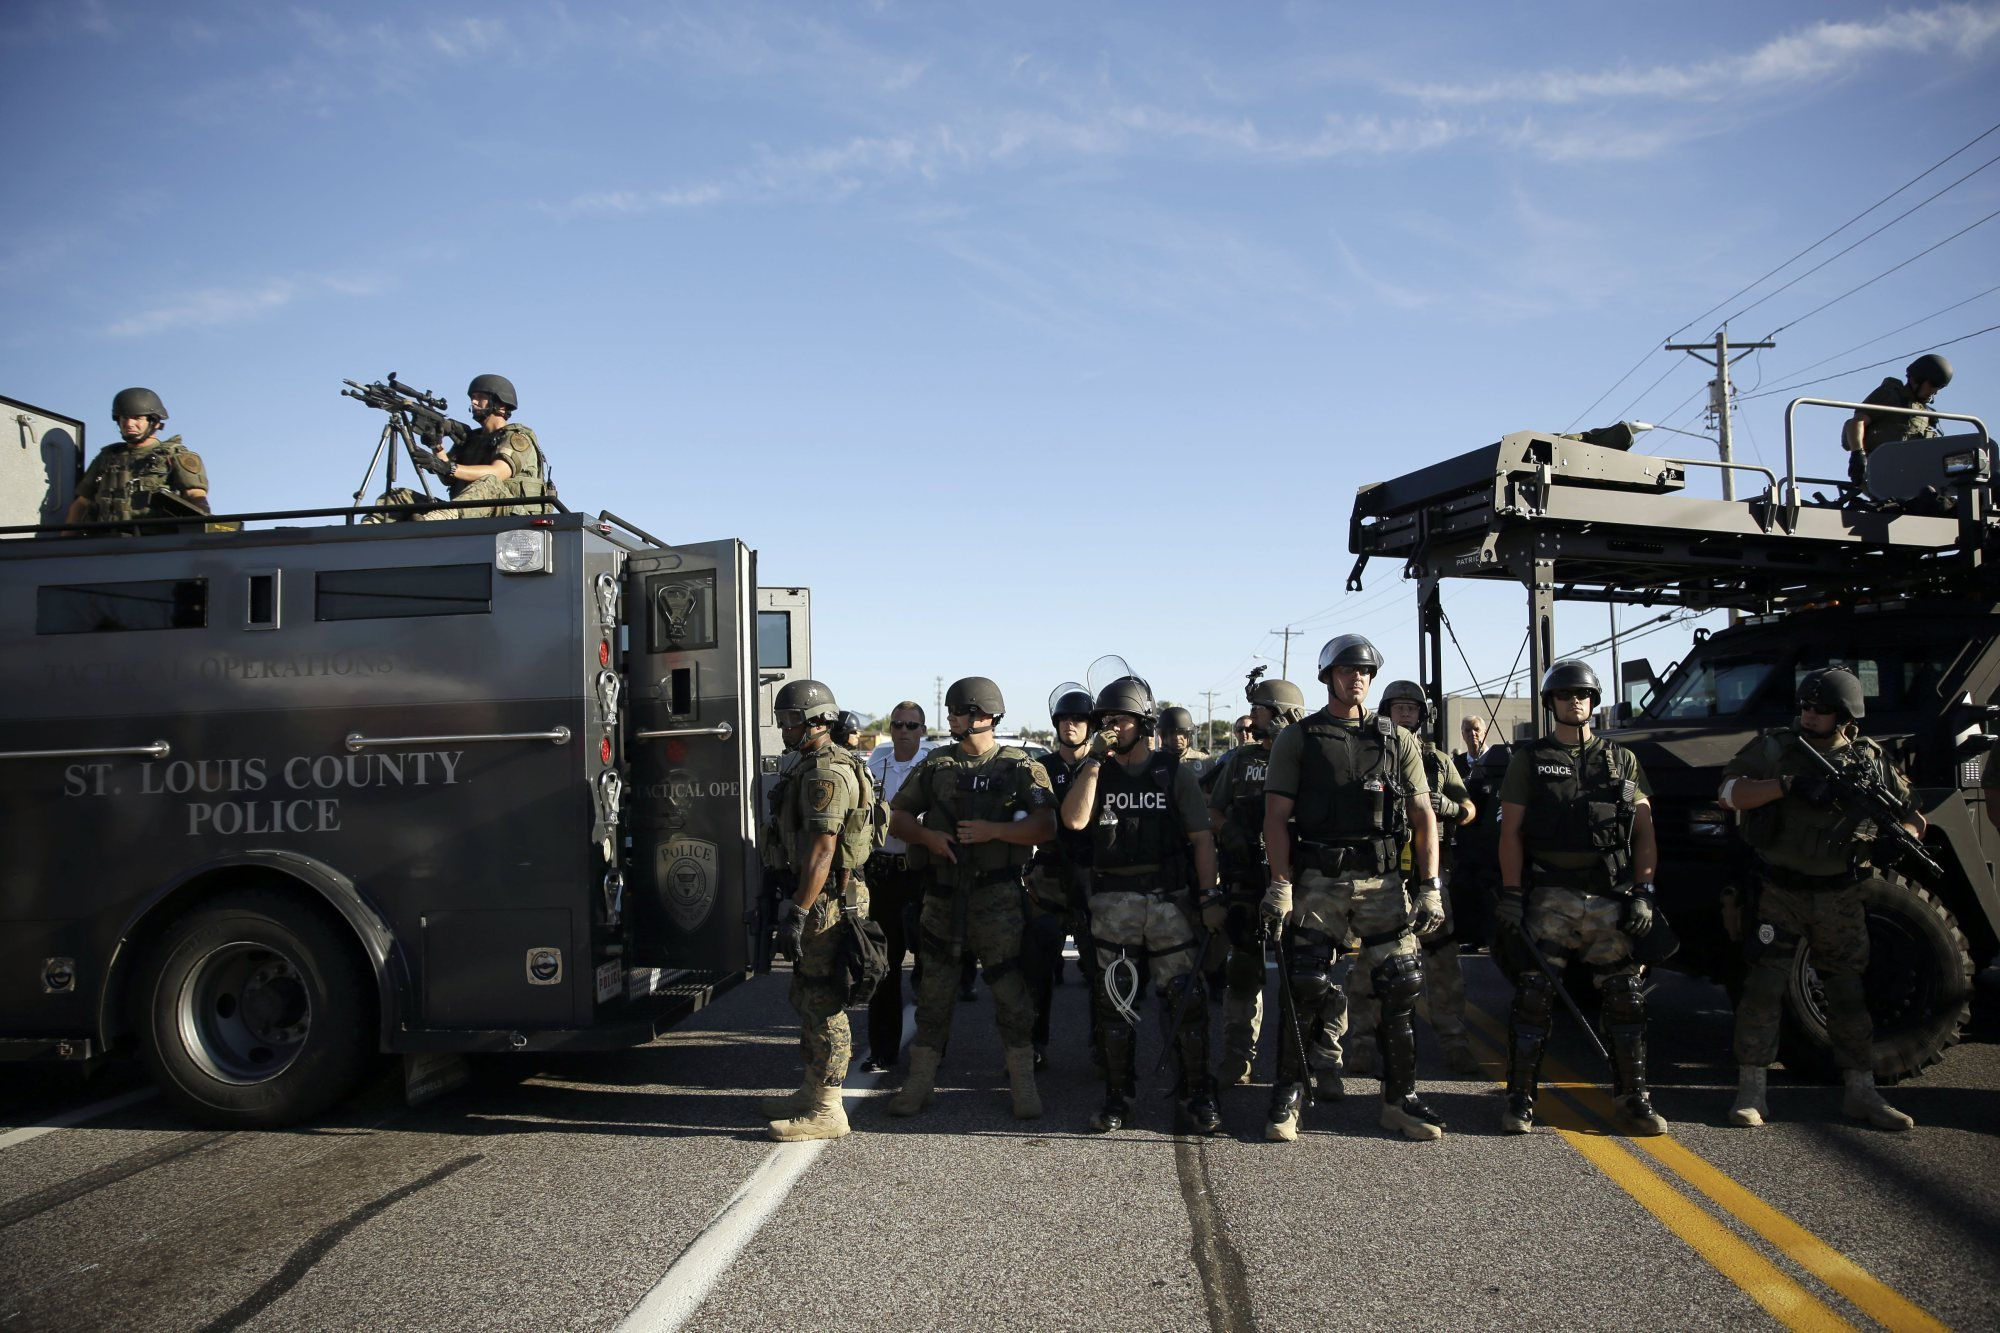 Police in riot gear watch protesters in Ferguson, Mo. on Aug. 13, 2014. Jeff Roberson—AP